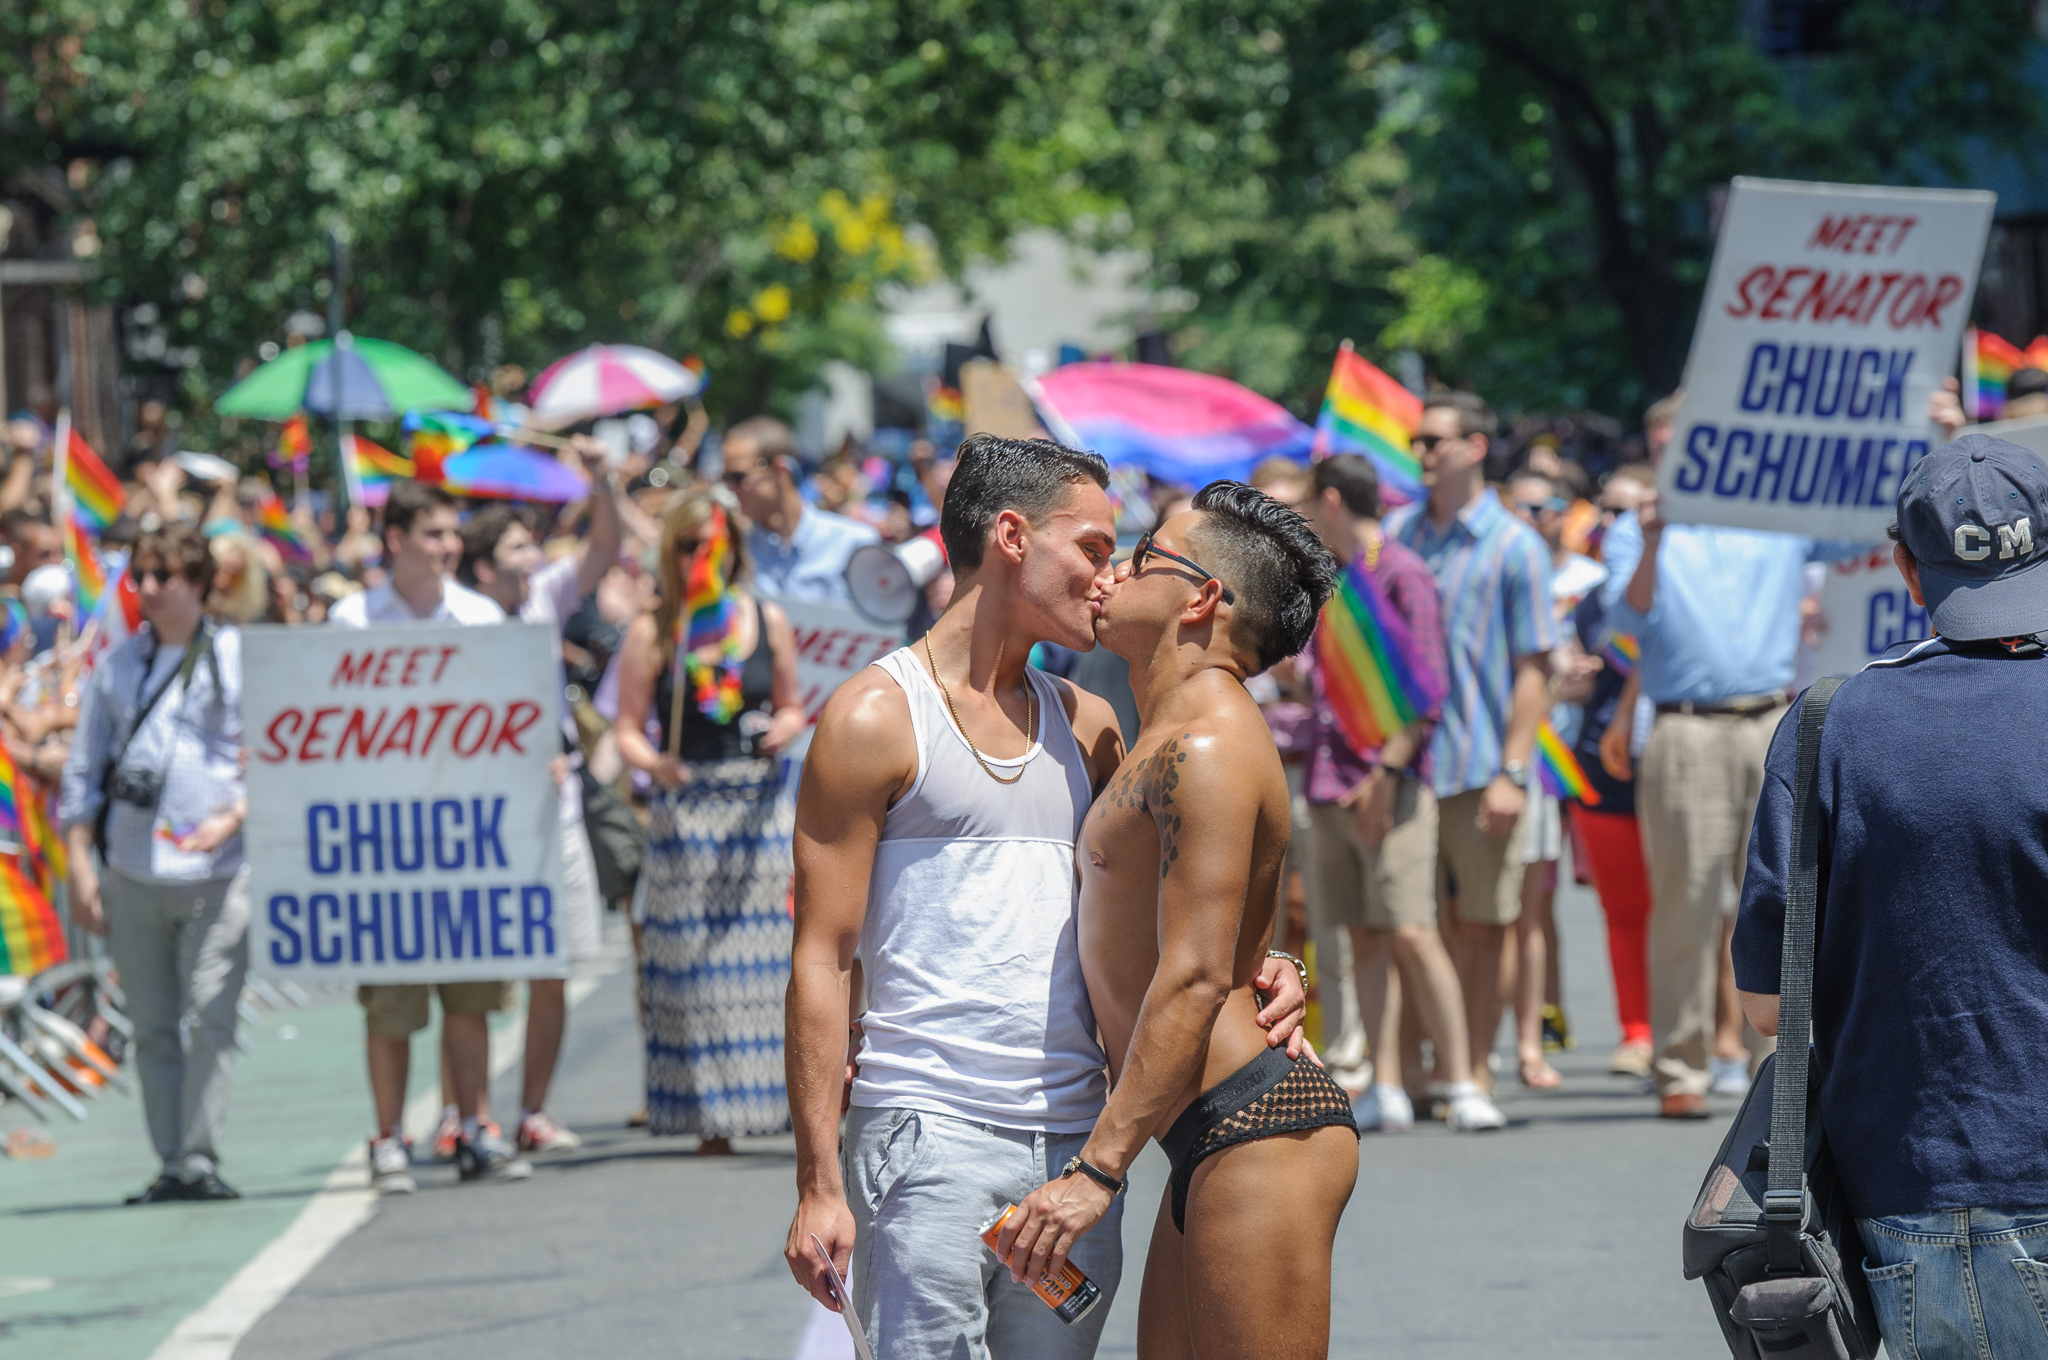 Gay Pride 2015 events in NYC